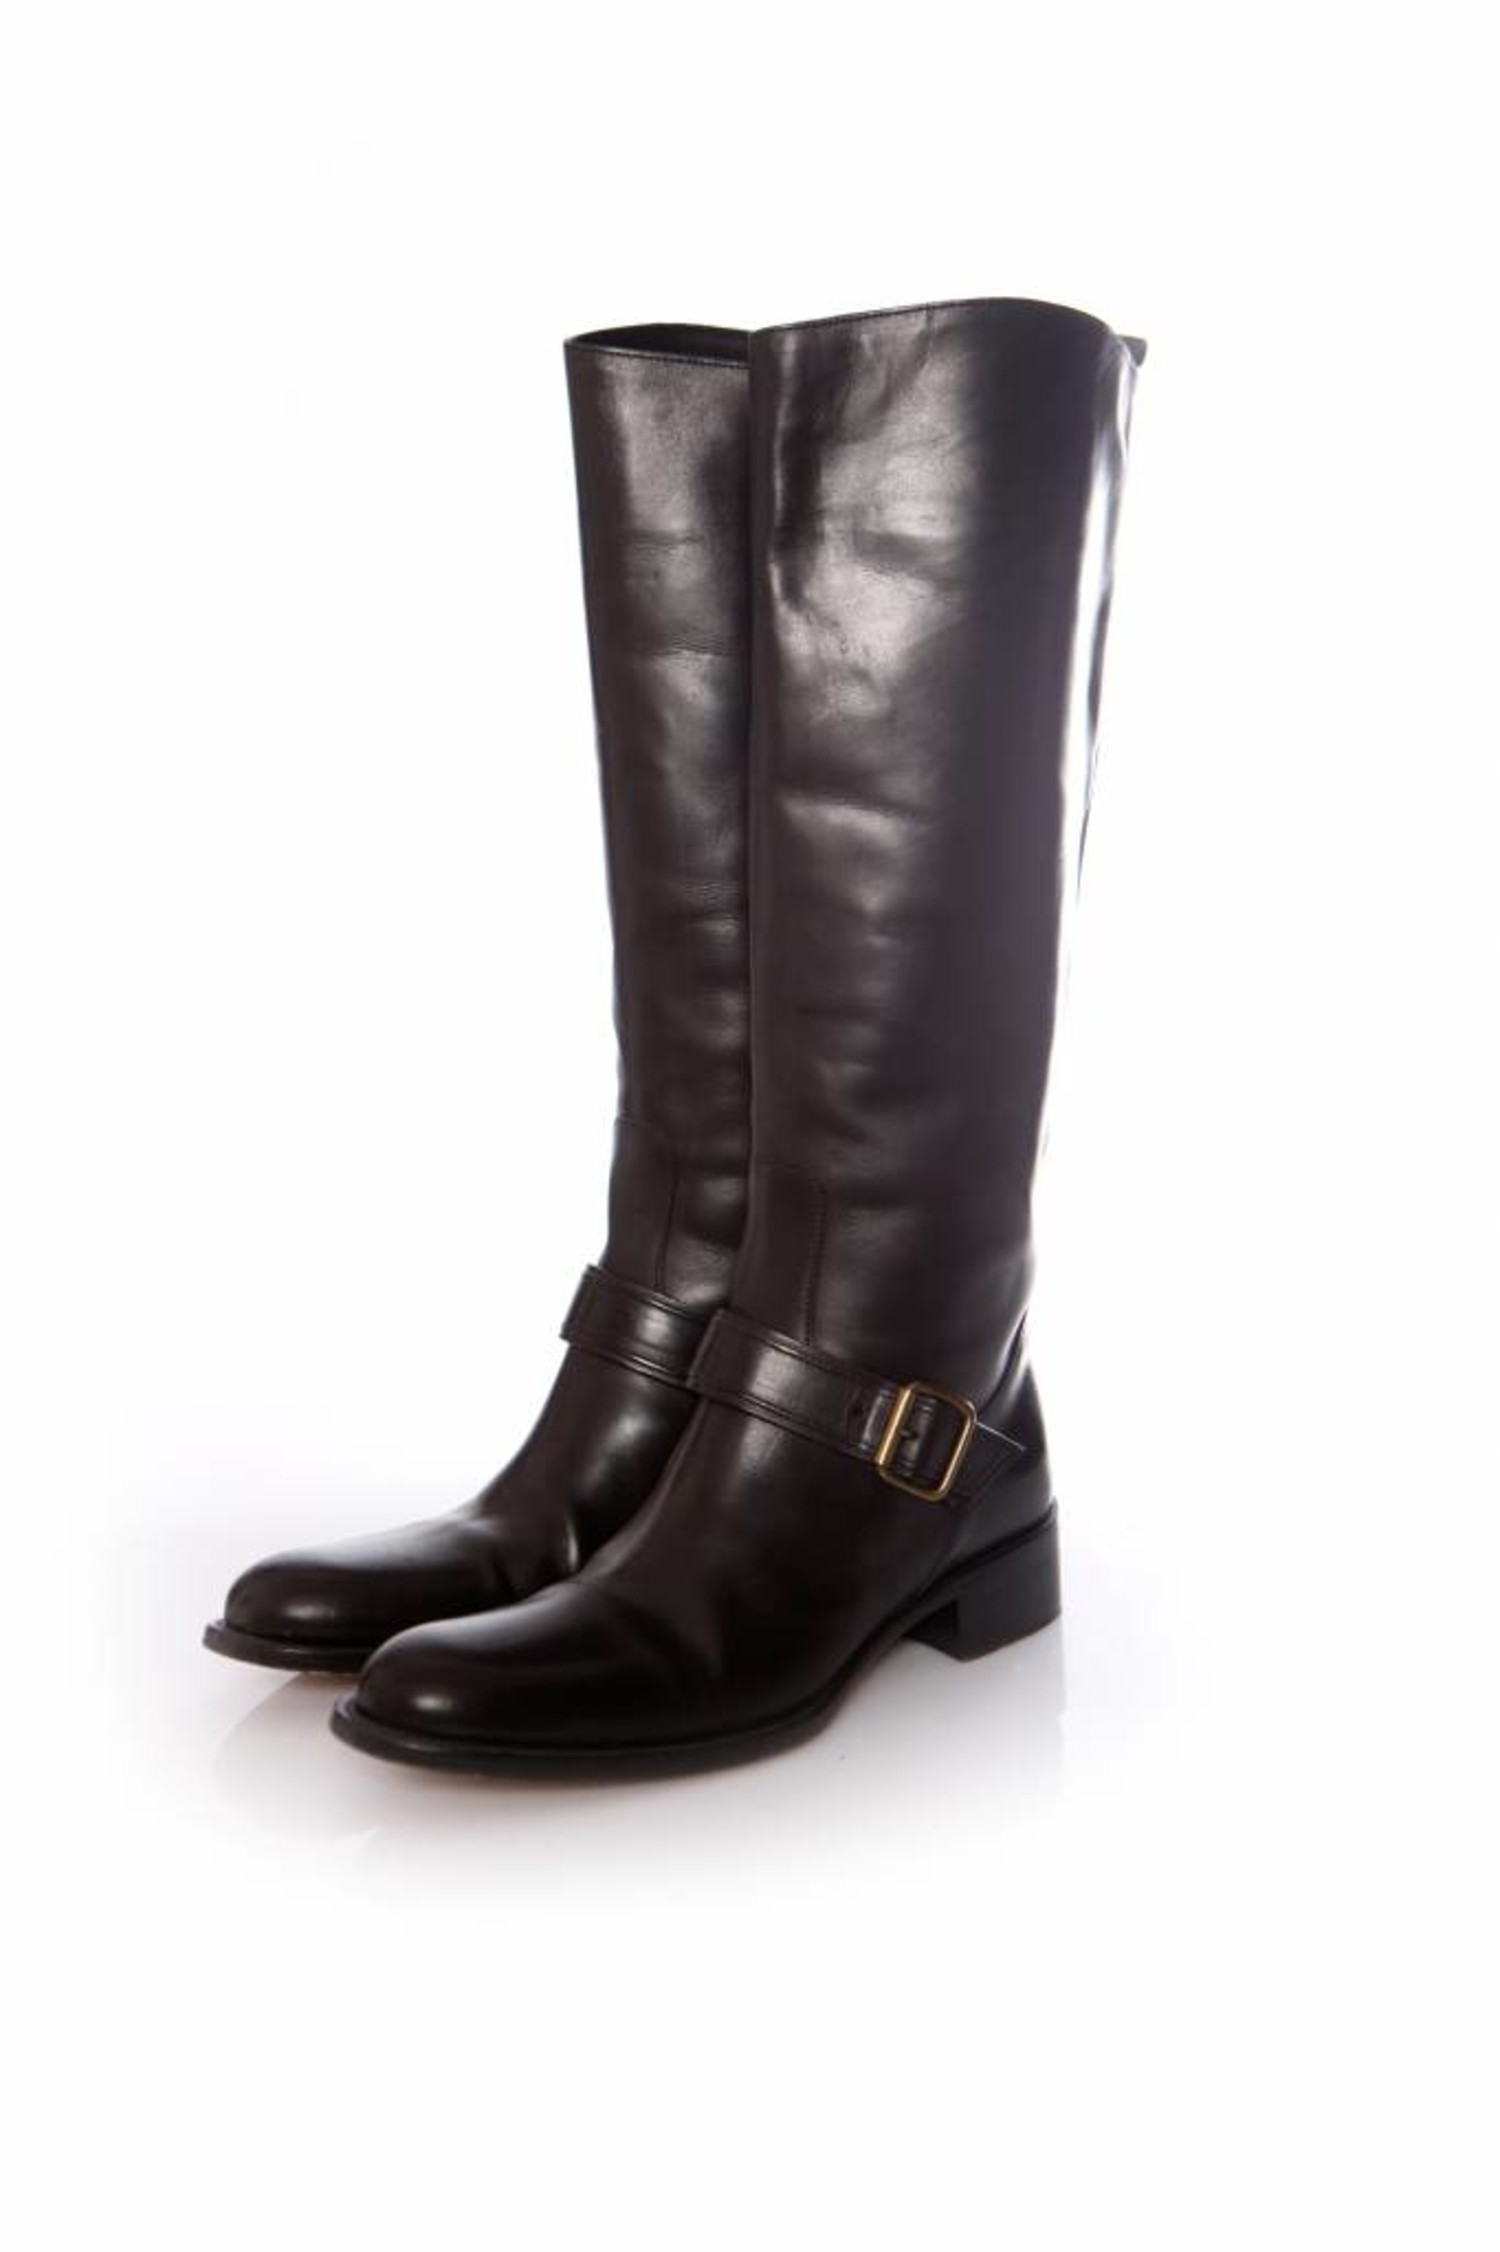 Sartore Black Leather Horse Riding Boots Unique Designer Pieces